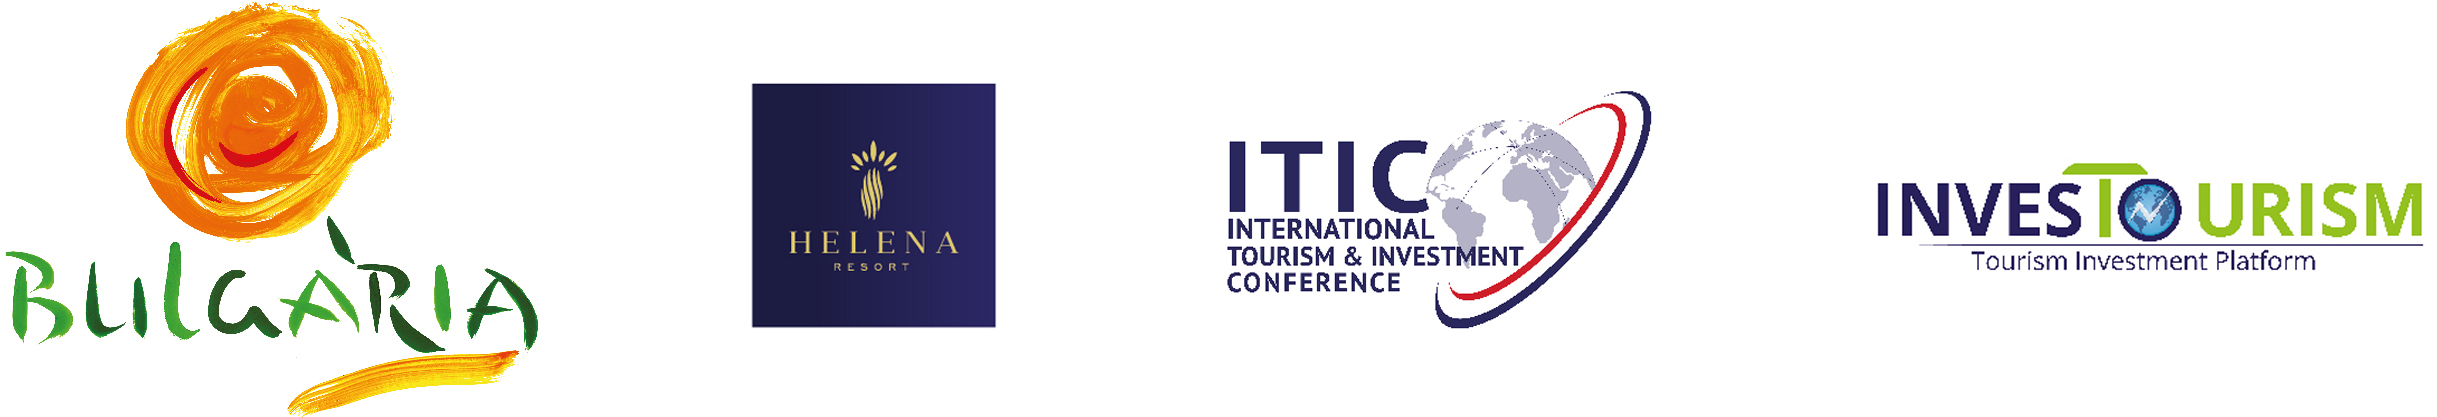 ITSC Partners